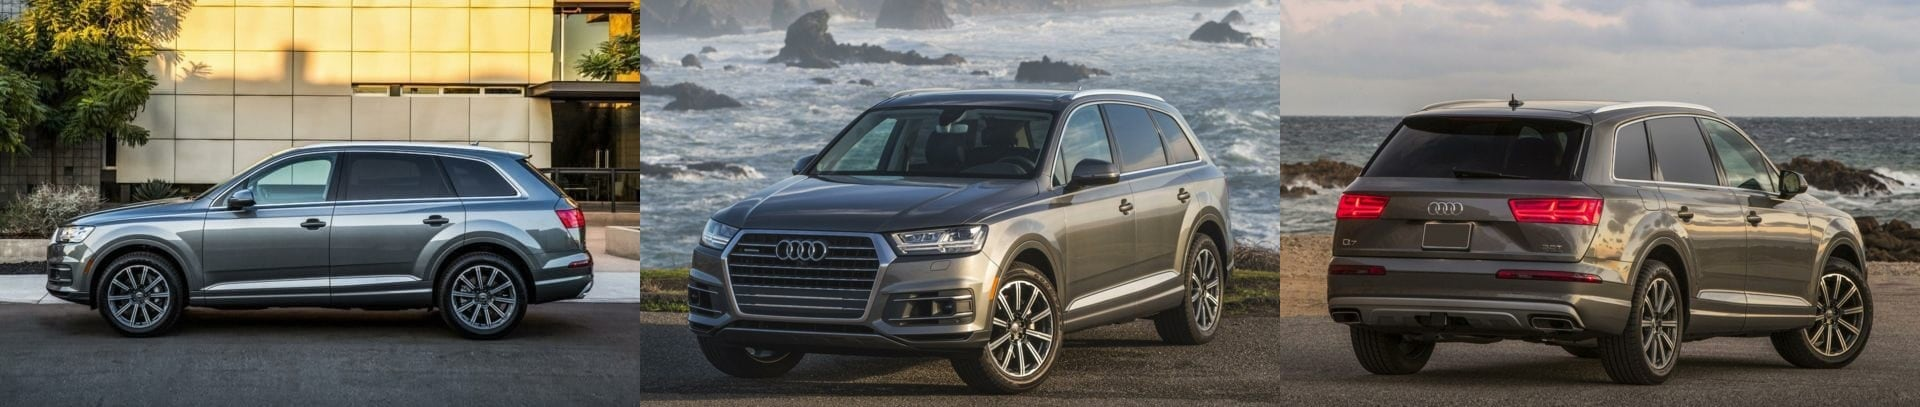 New Audi Q SUVs For Sale Or Lease In Burlingame CA At Audi - Bay area audi dealerships